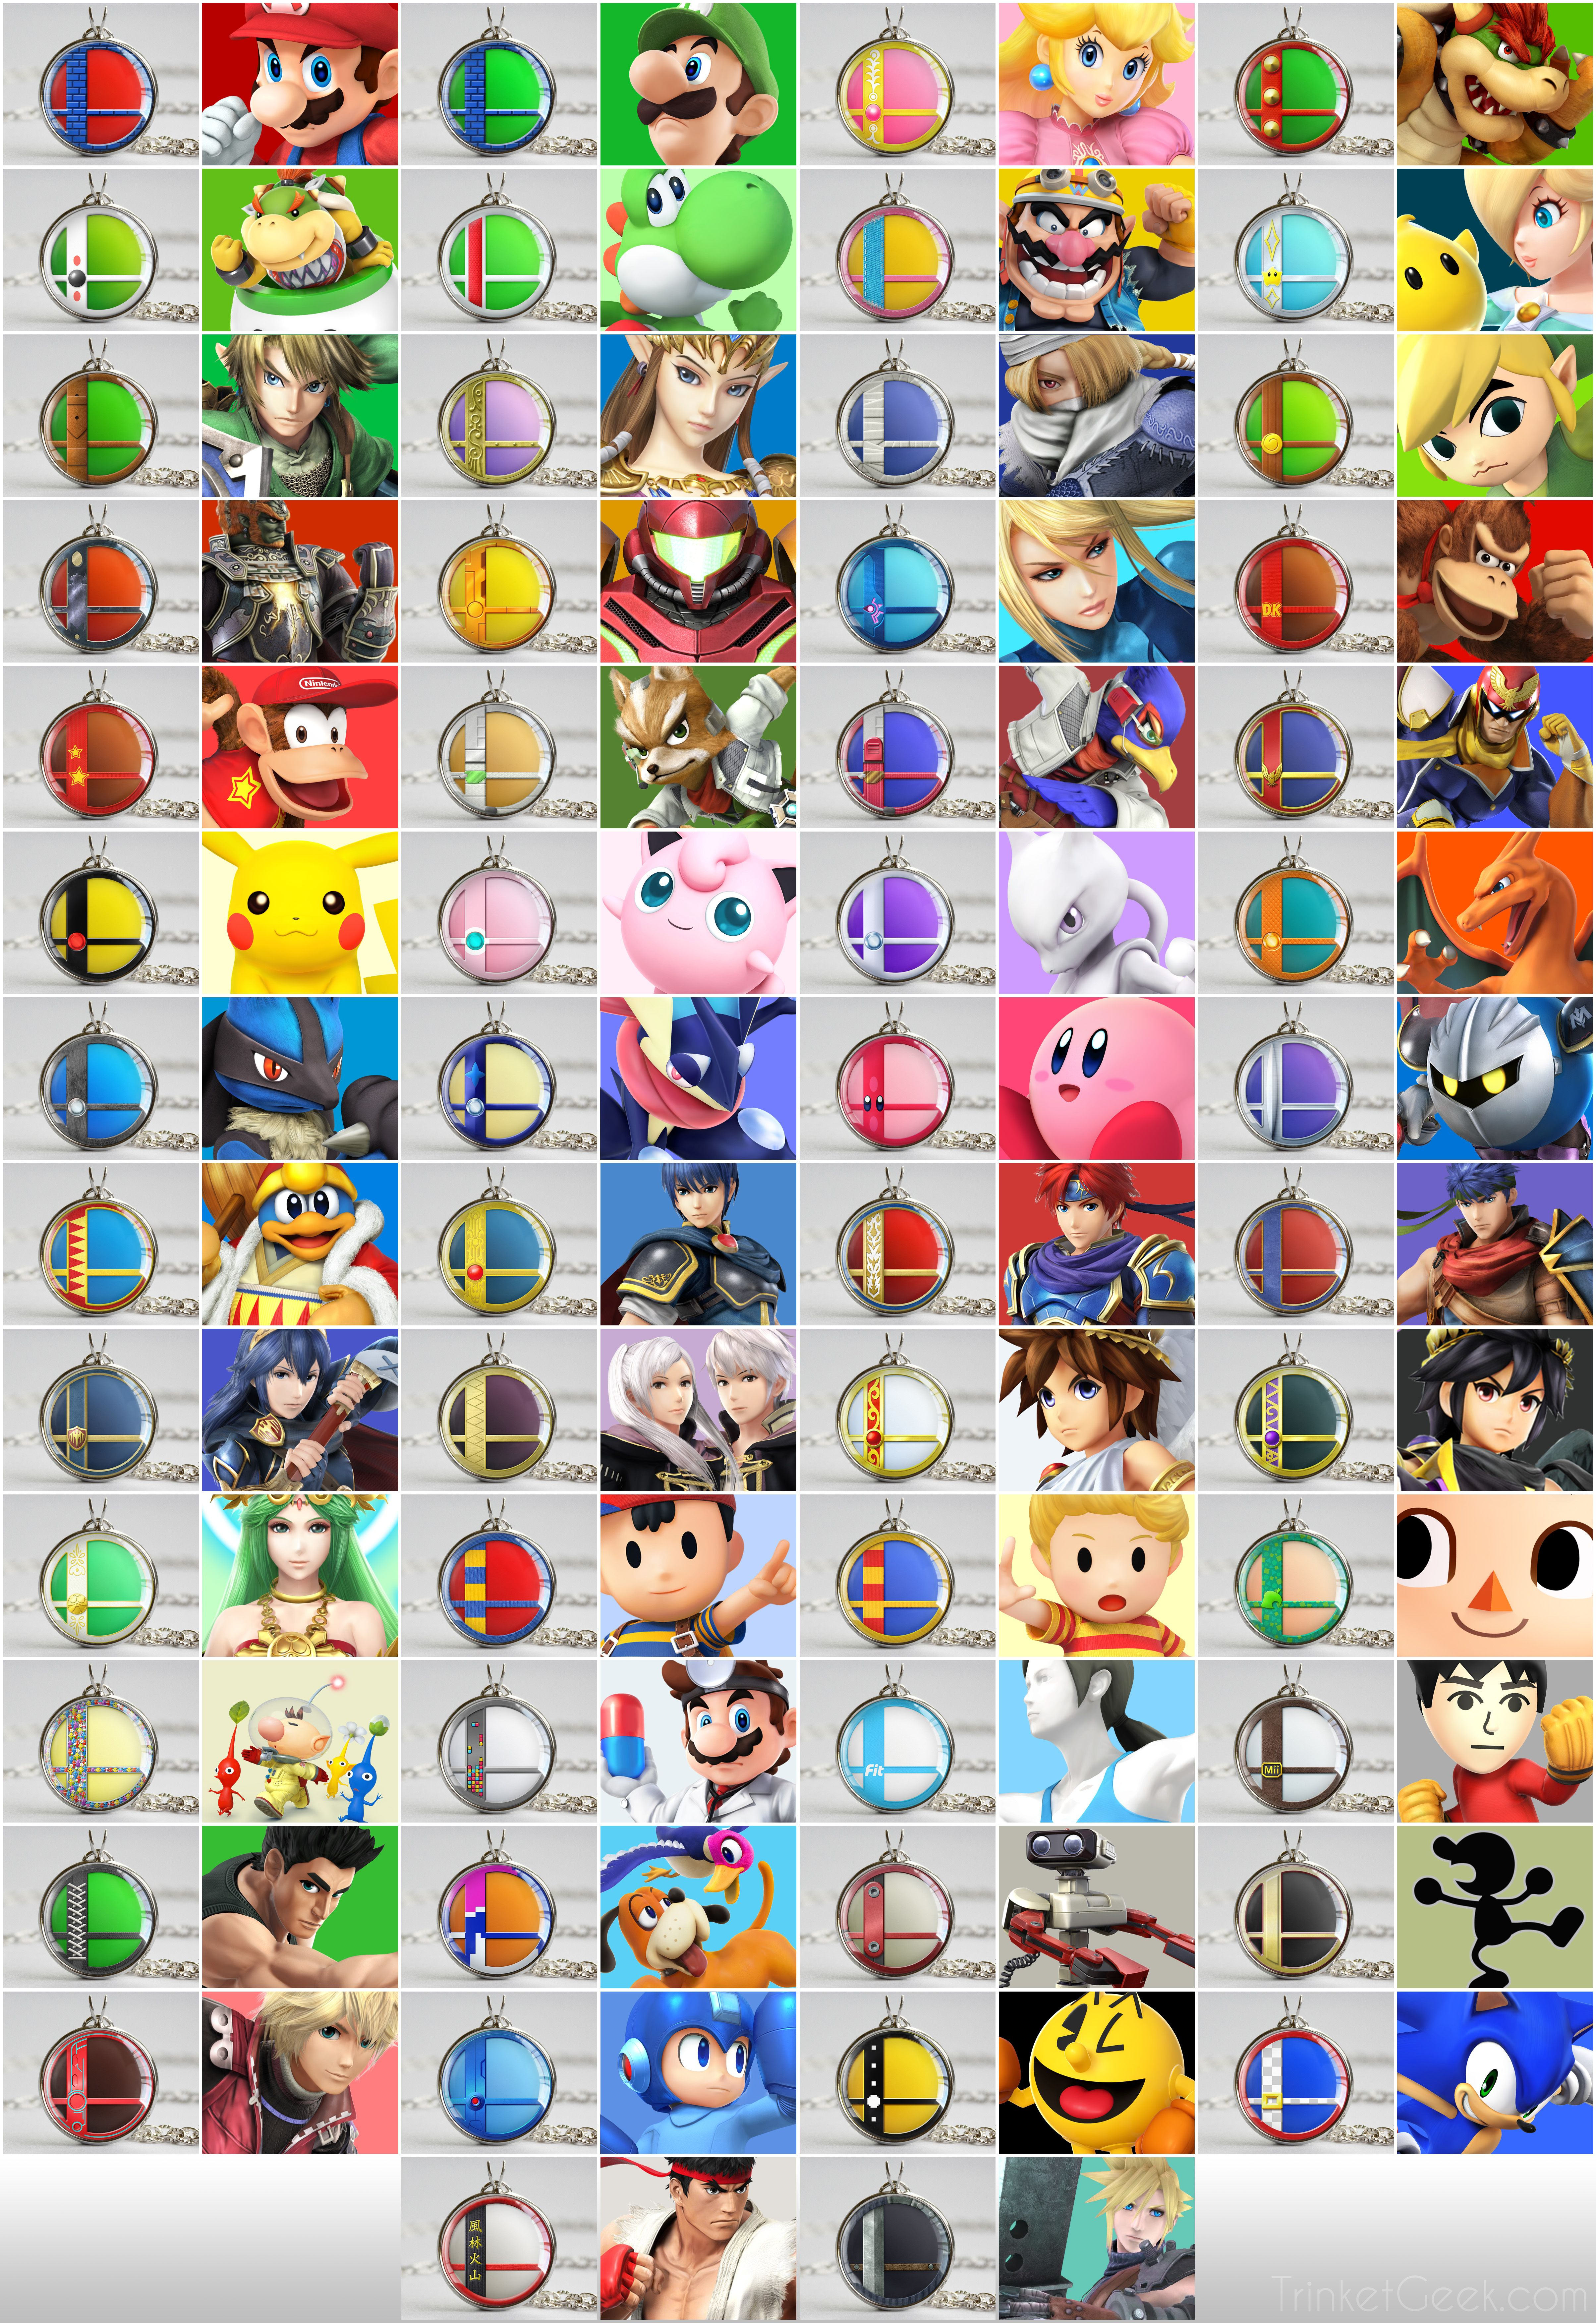 268d172dbab093dad63a8cccca536296 - How To Get Every Character In Super Smash Bros Brawl